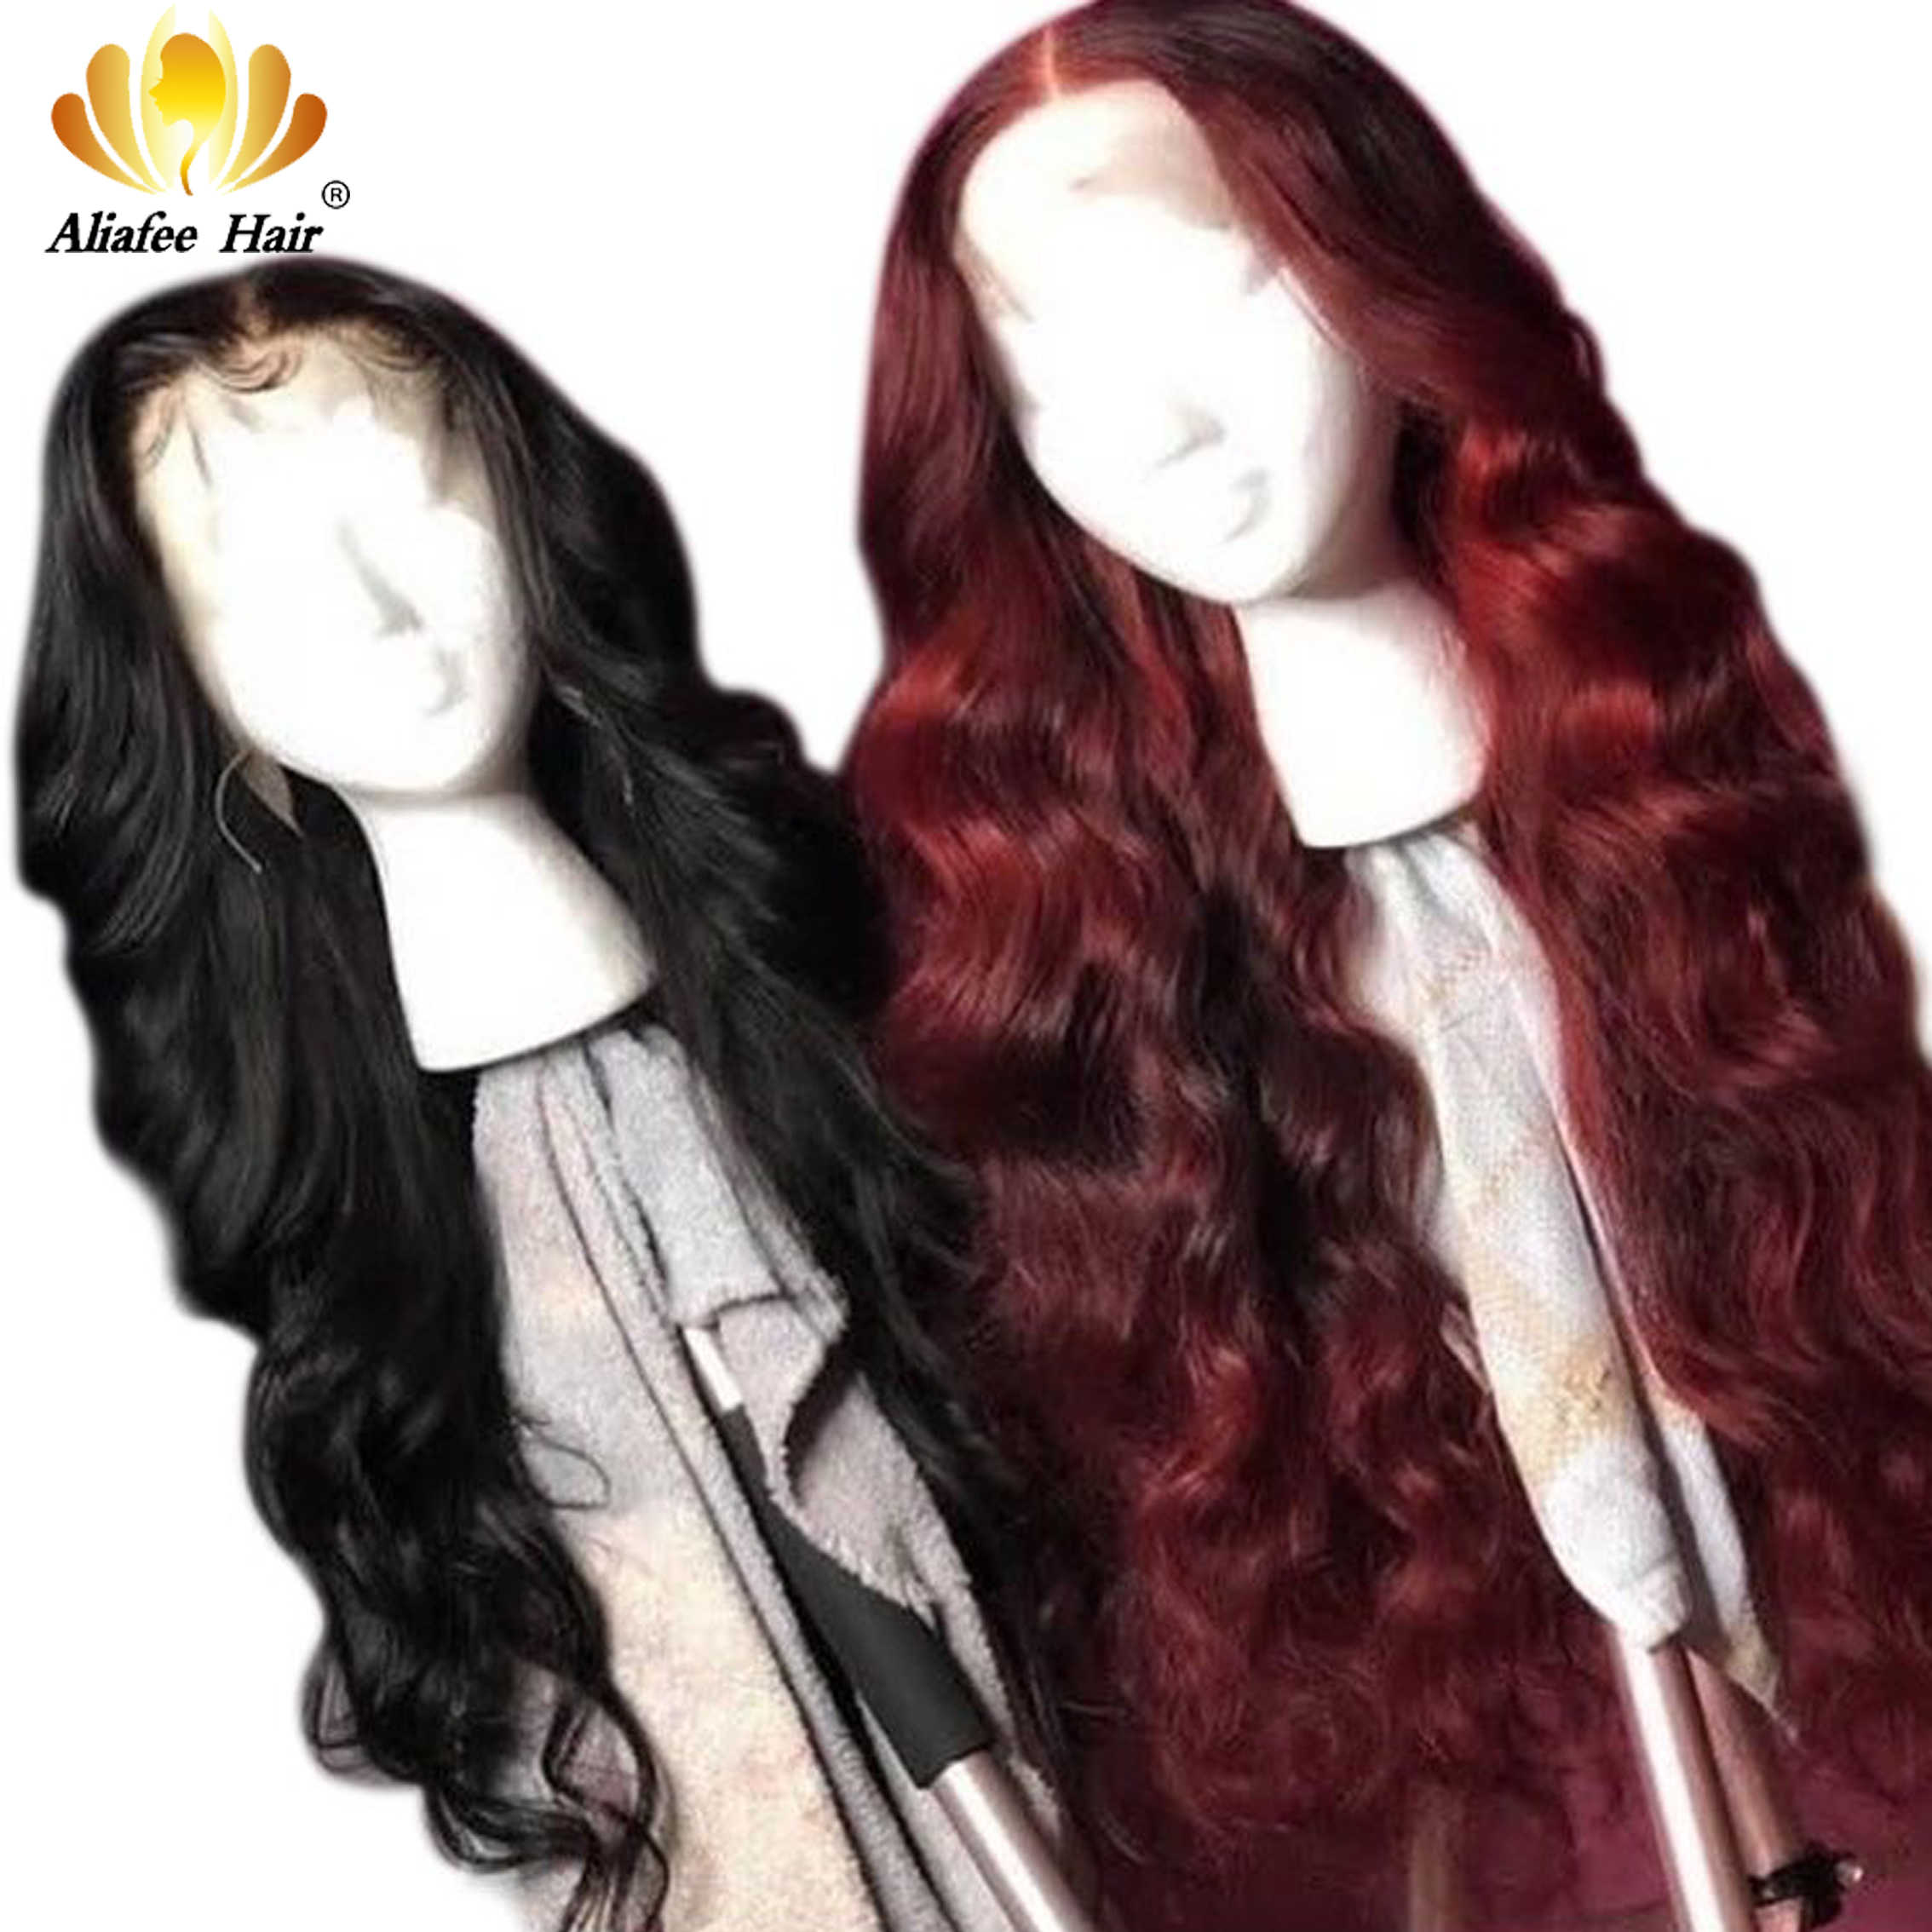 AliAfee 13x4 Lace Front Human Hair Wigs Brazilian Body Wave Wig Pre Plucked Remy Human Hair Wigs With Baby Hair Natural Hairline